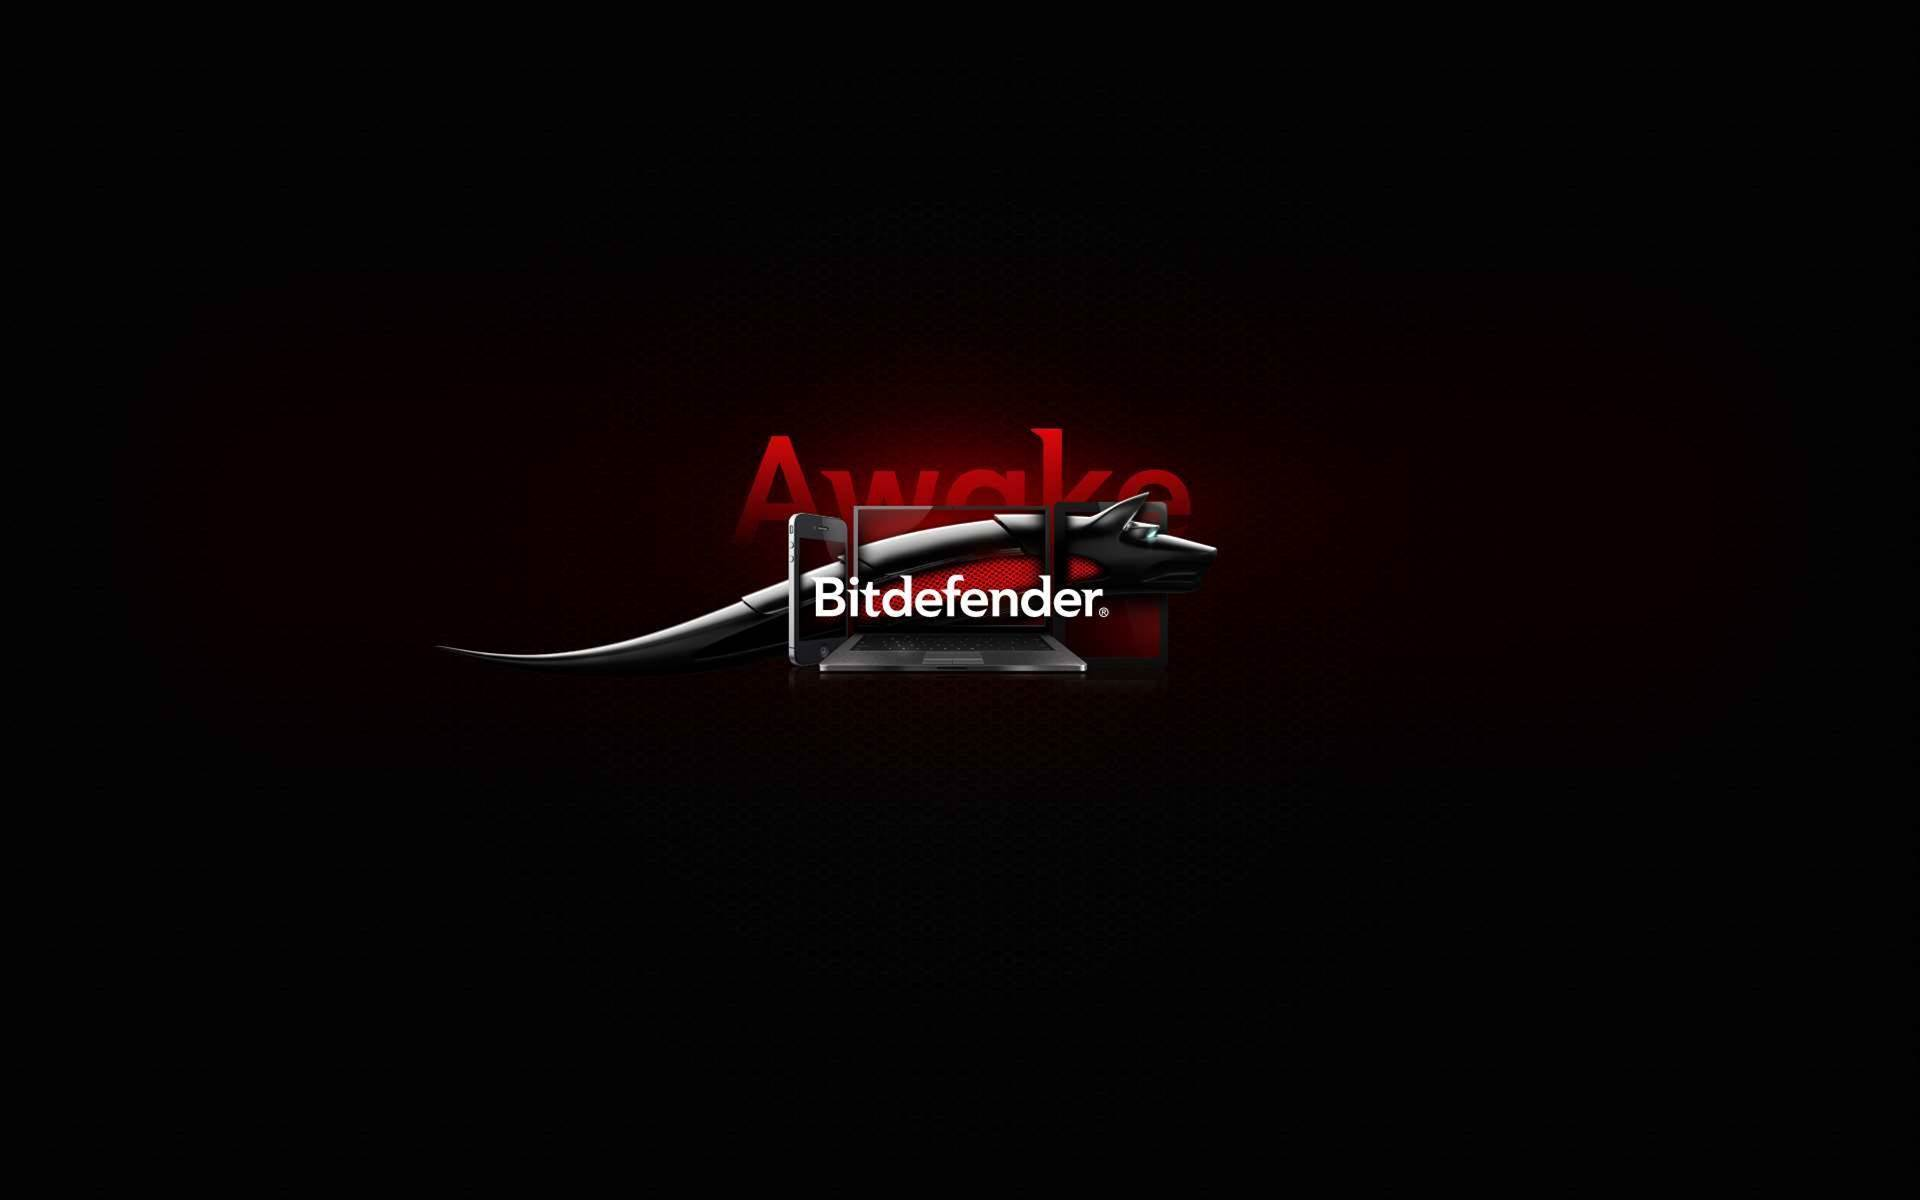 Bitdefender wants you!